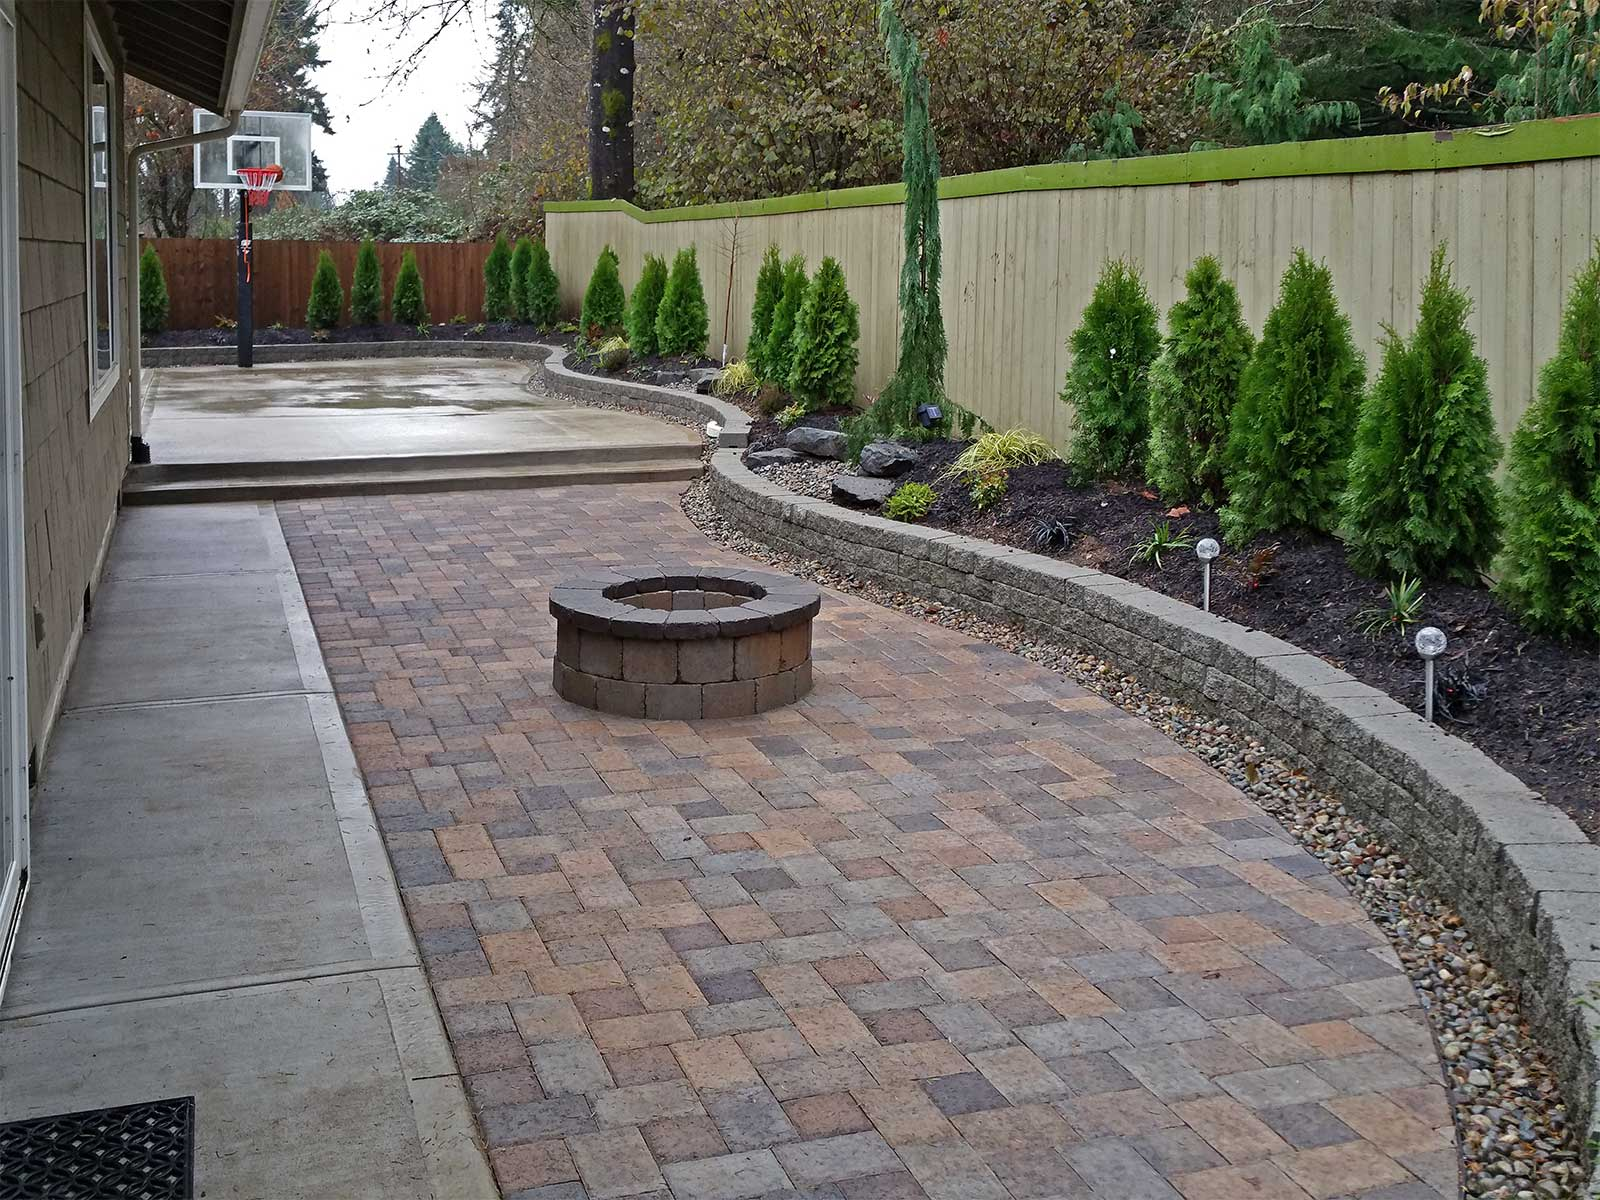 High Quality Concrete Driveway, Paver Patio, Sidewalk, Landscaping, Retaining Walls